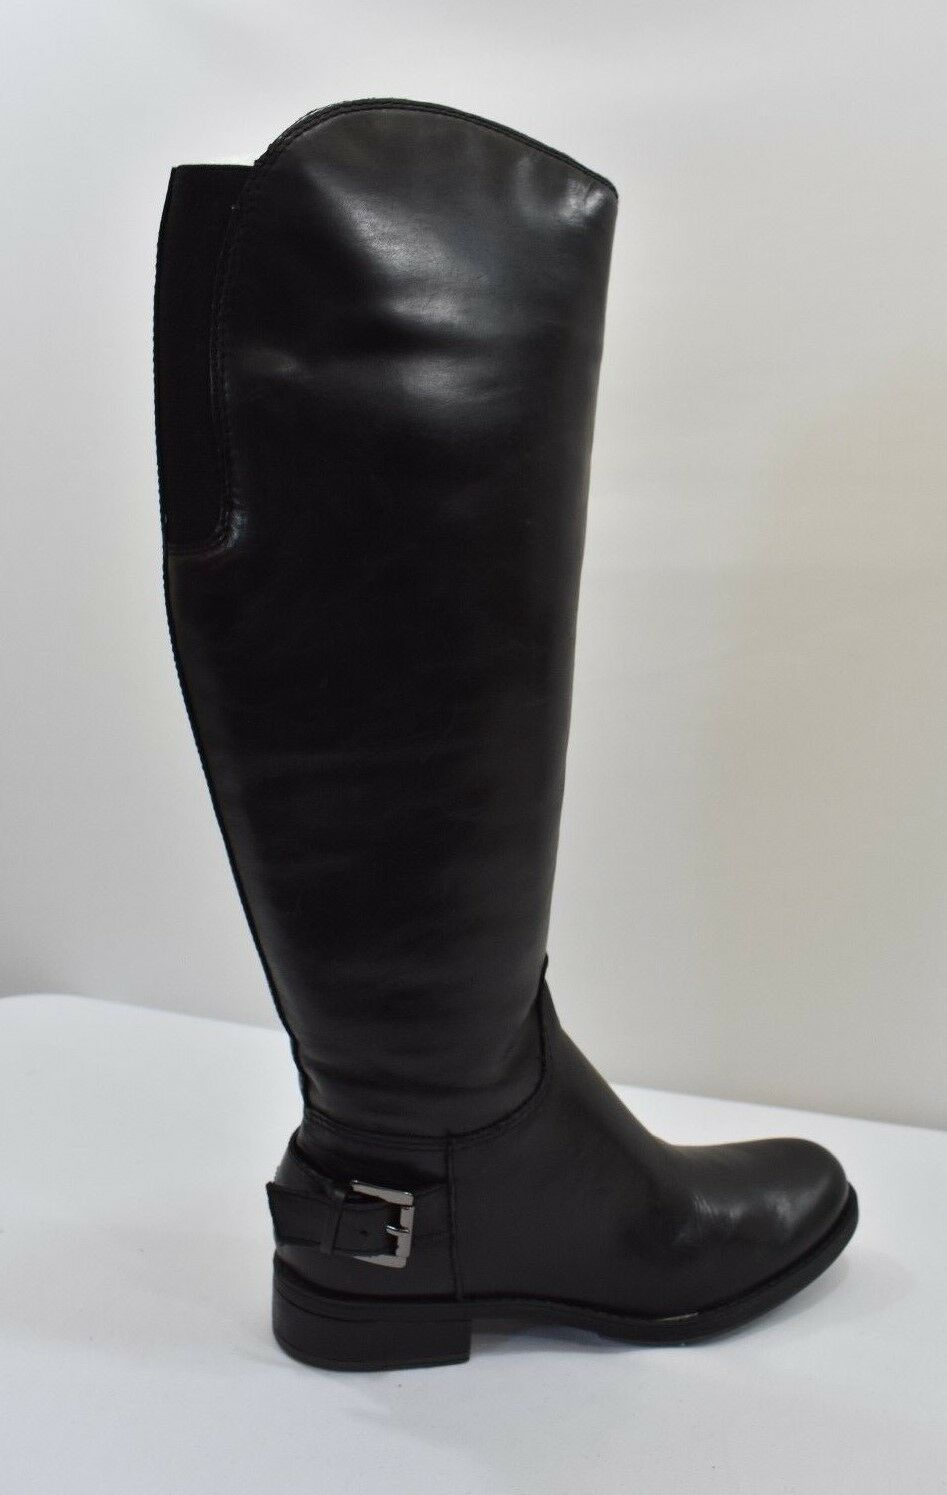 GUESS GW LURIE LEATHER RIDING  BOOTS BLACK 5.5M NEW IN BOX